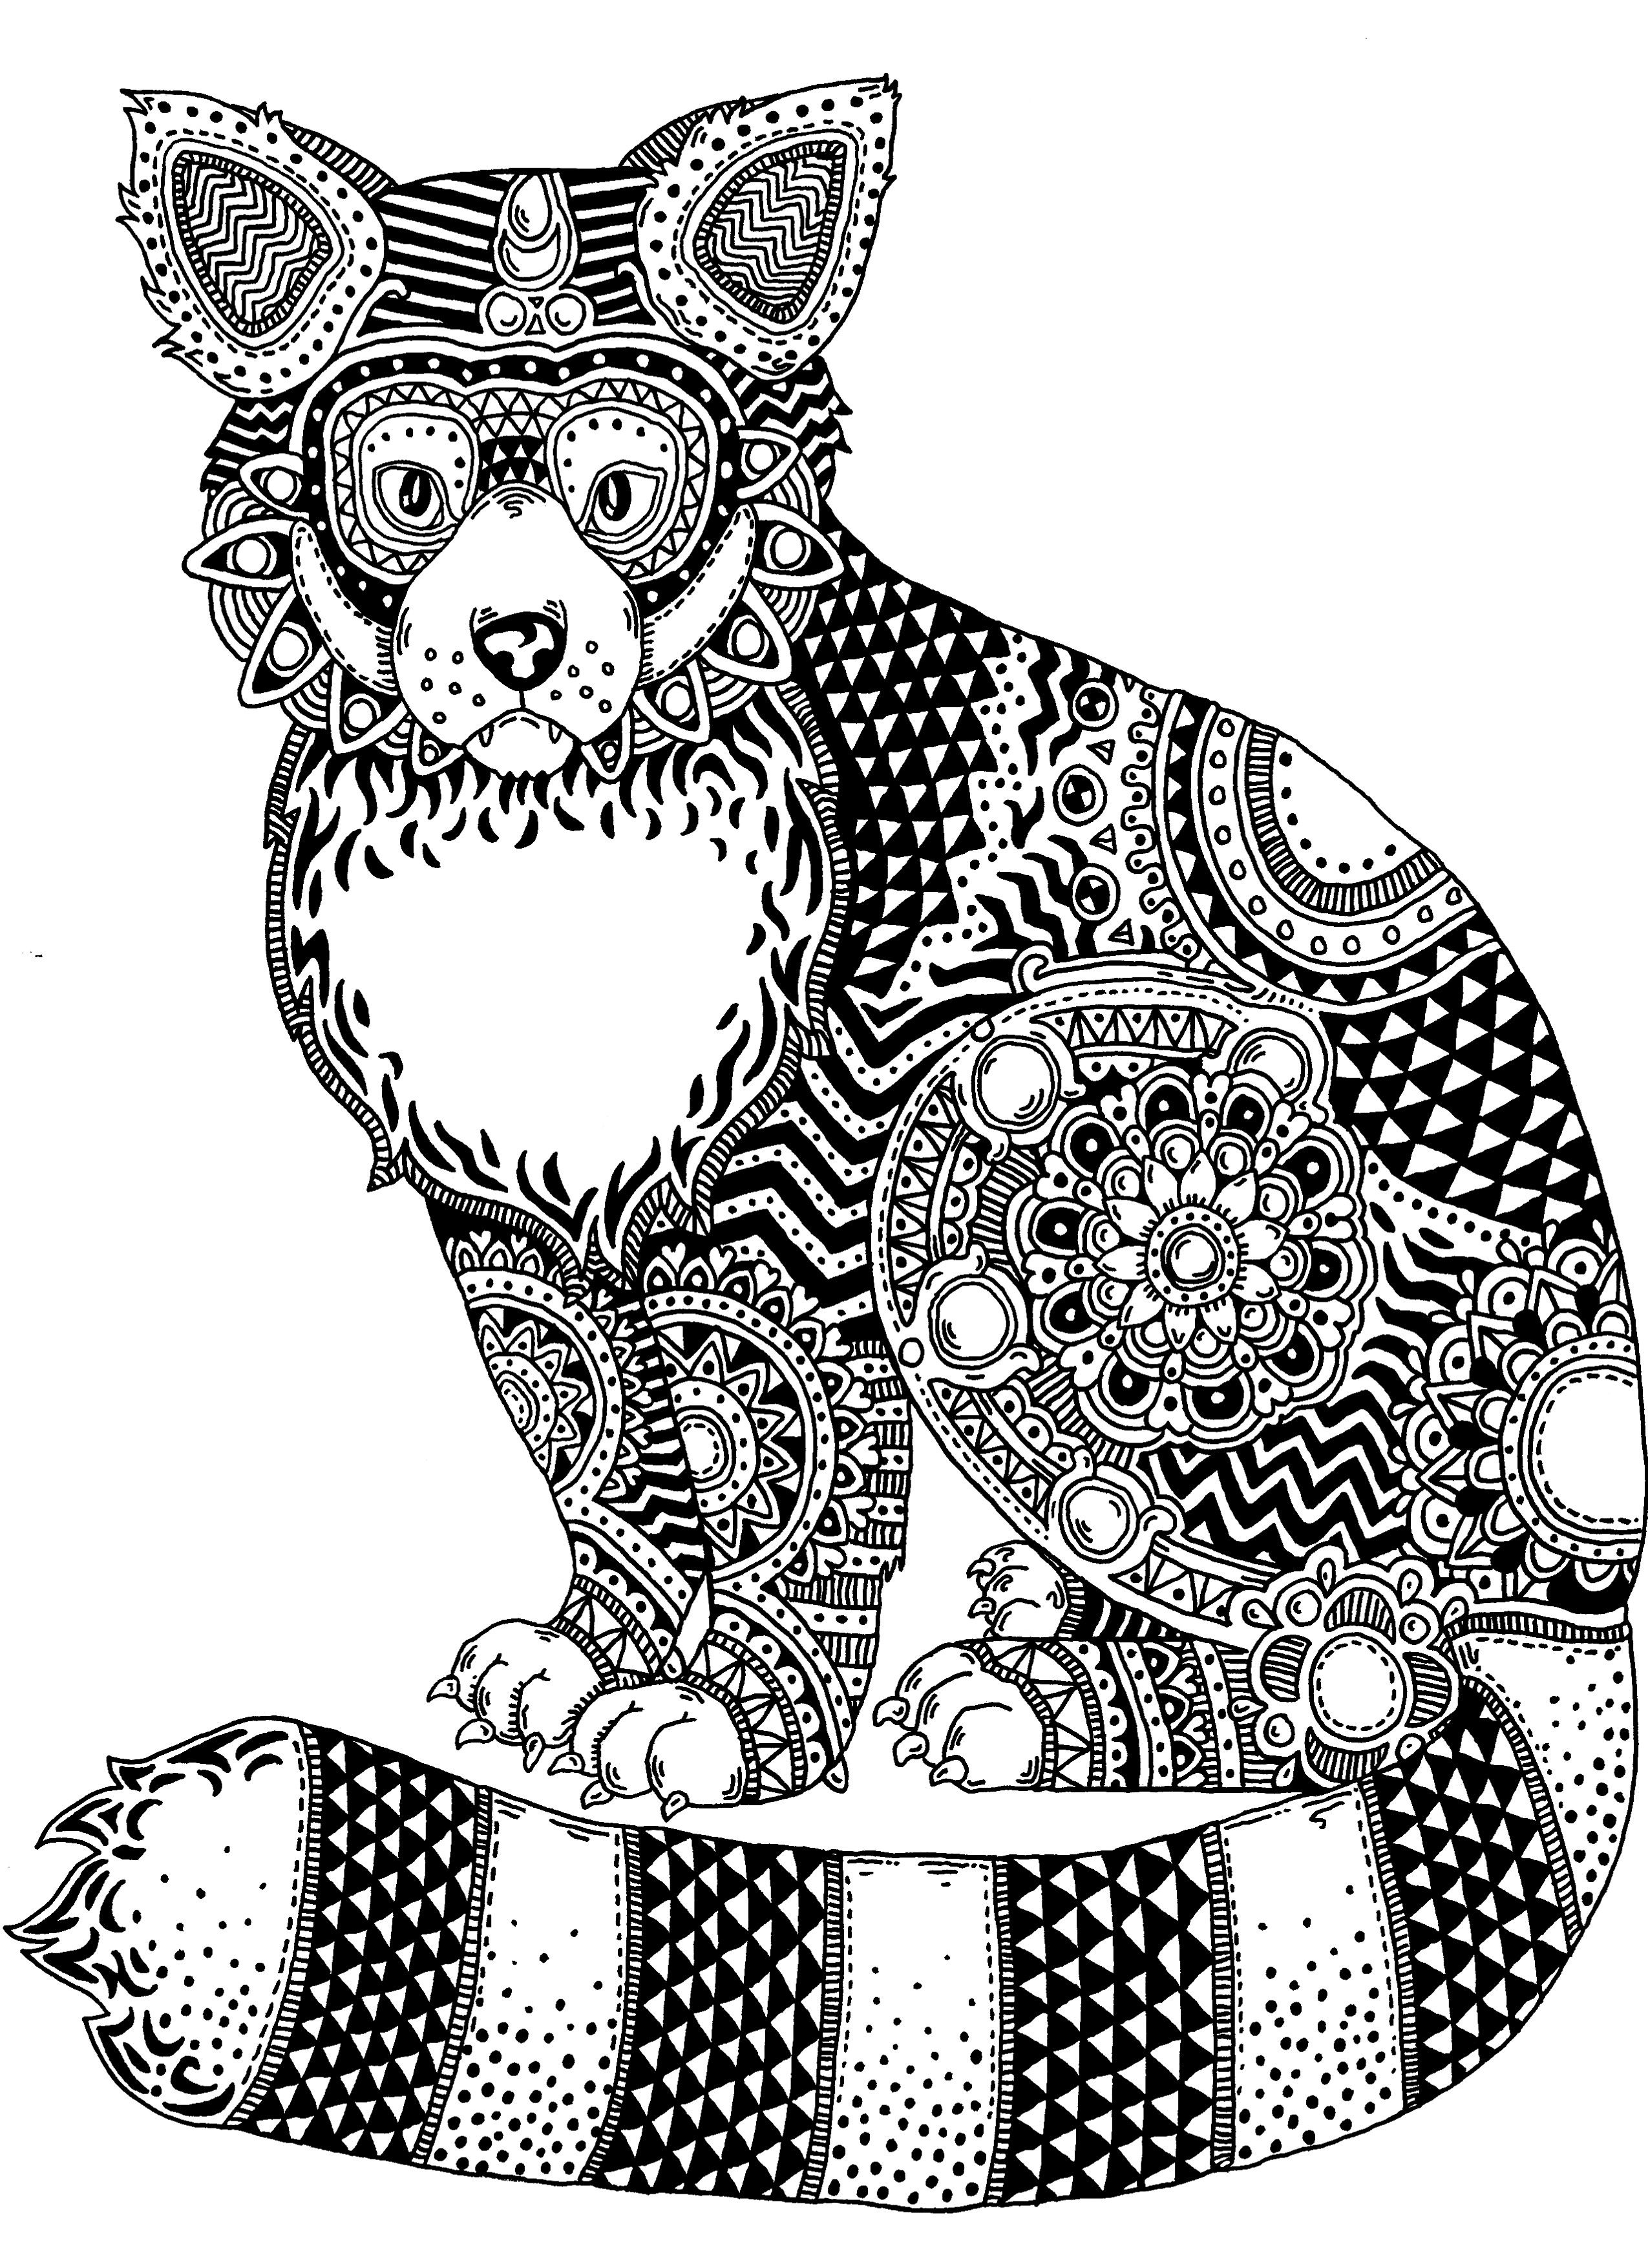 red panda coloring pages red panda coloring pages clipart panda free clipart images red panda coloring pages 1 1